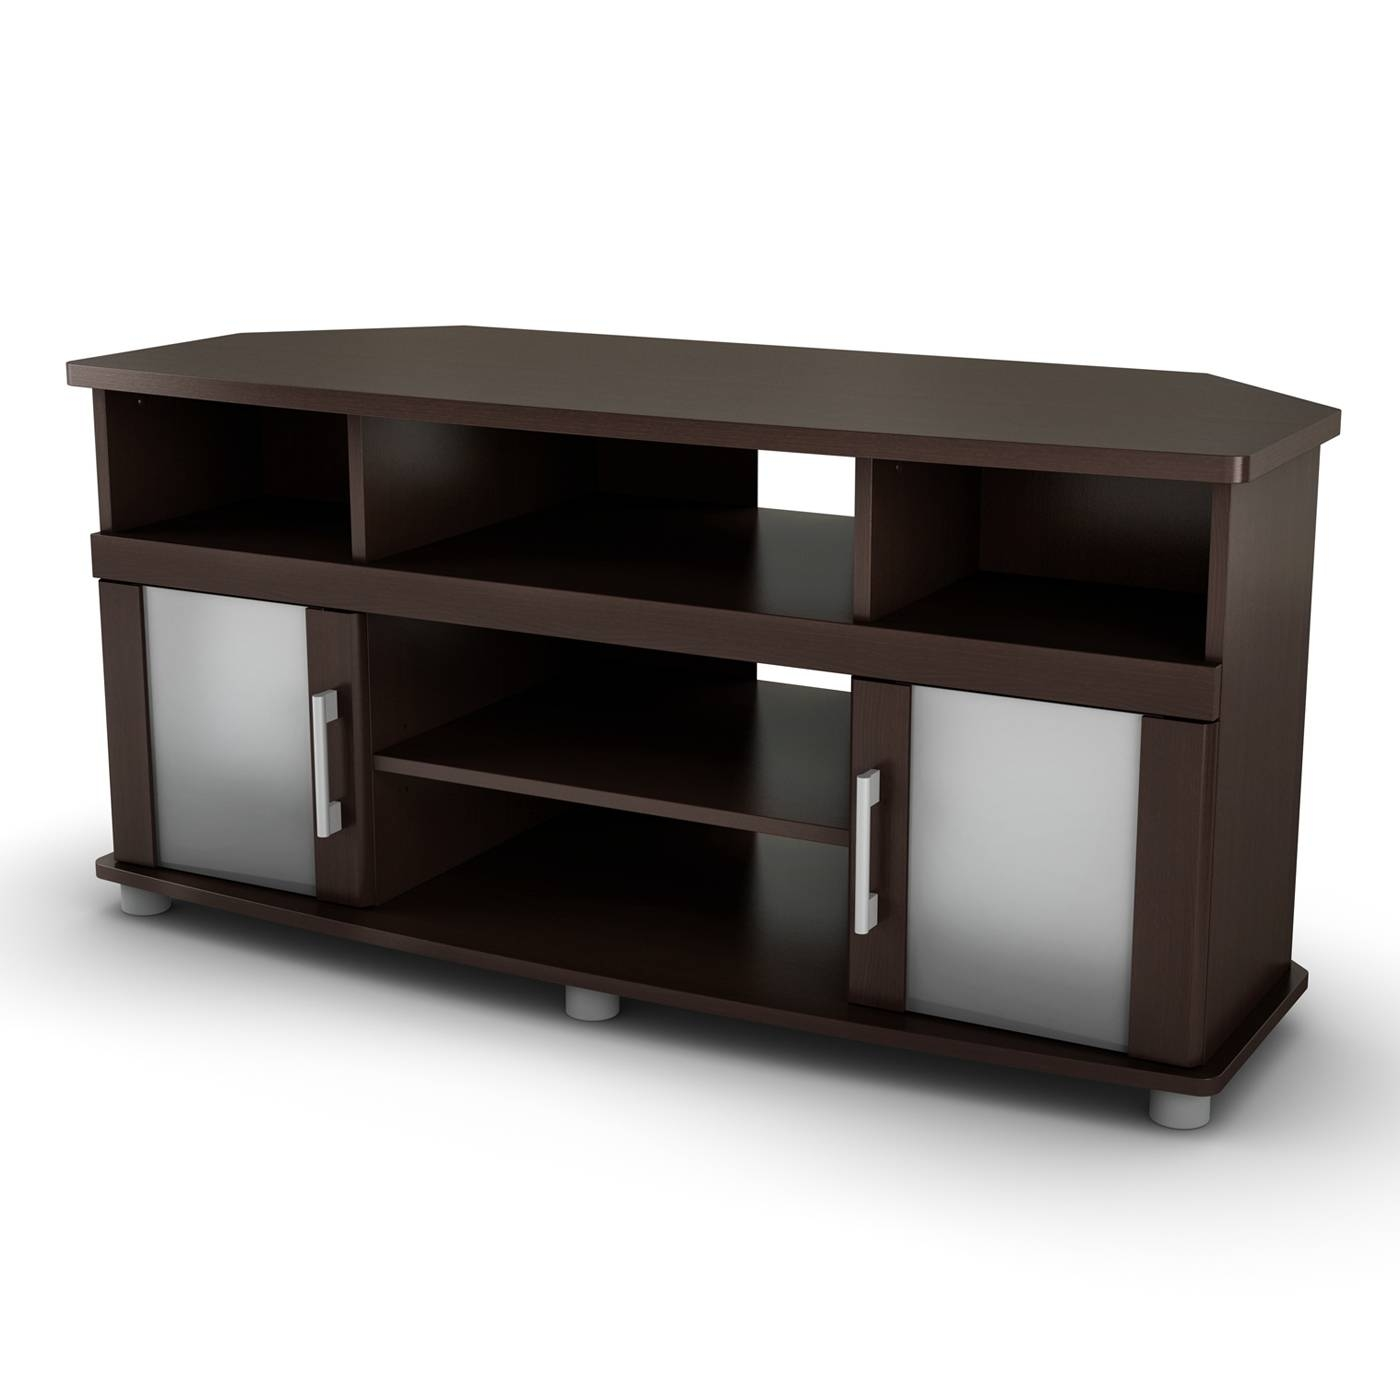 South Shore Furniture City Life Corner Tv Stand | Lowe's Canada inside 50 Inch Corner Tv Cabinets (Image 12 of 15)